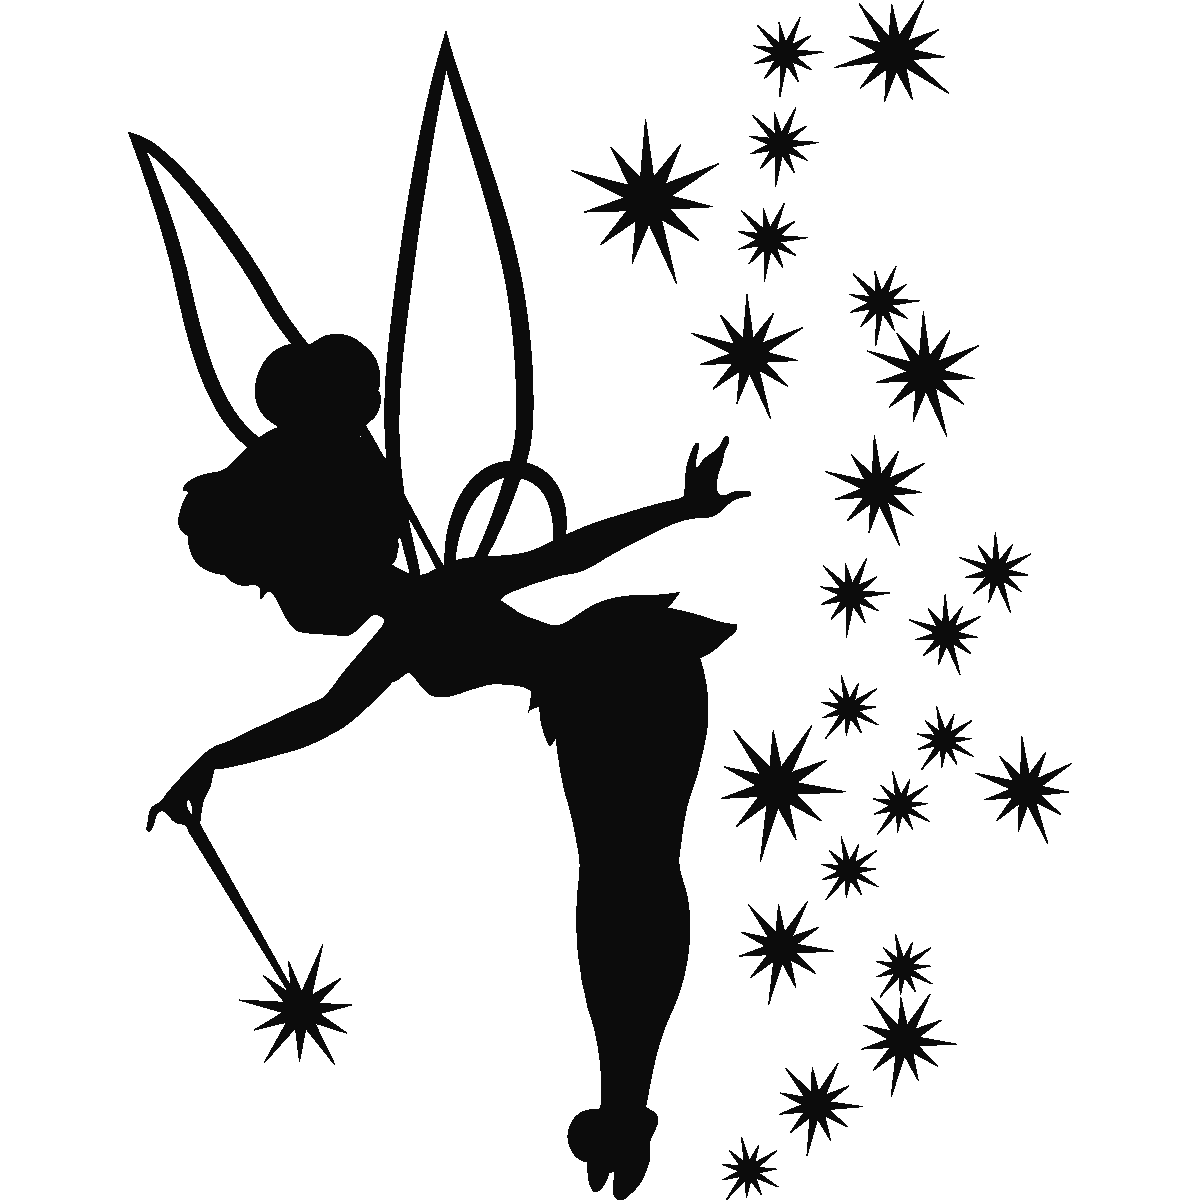 Transparent tinkerbell template. Pumpkin carving how to